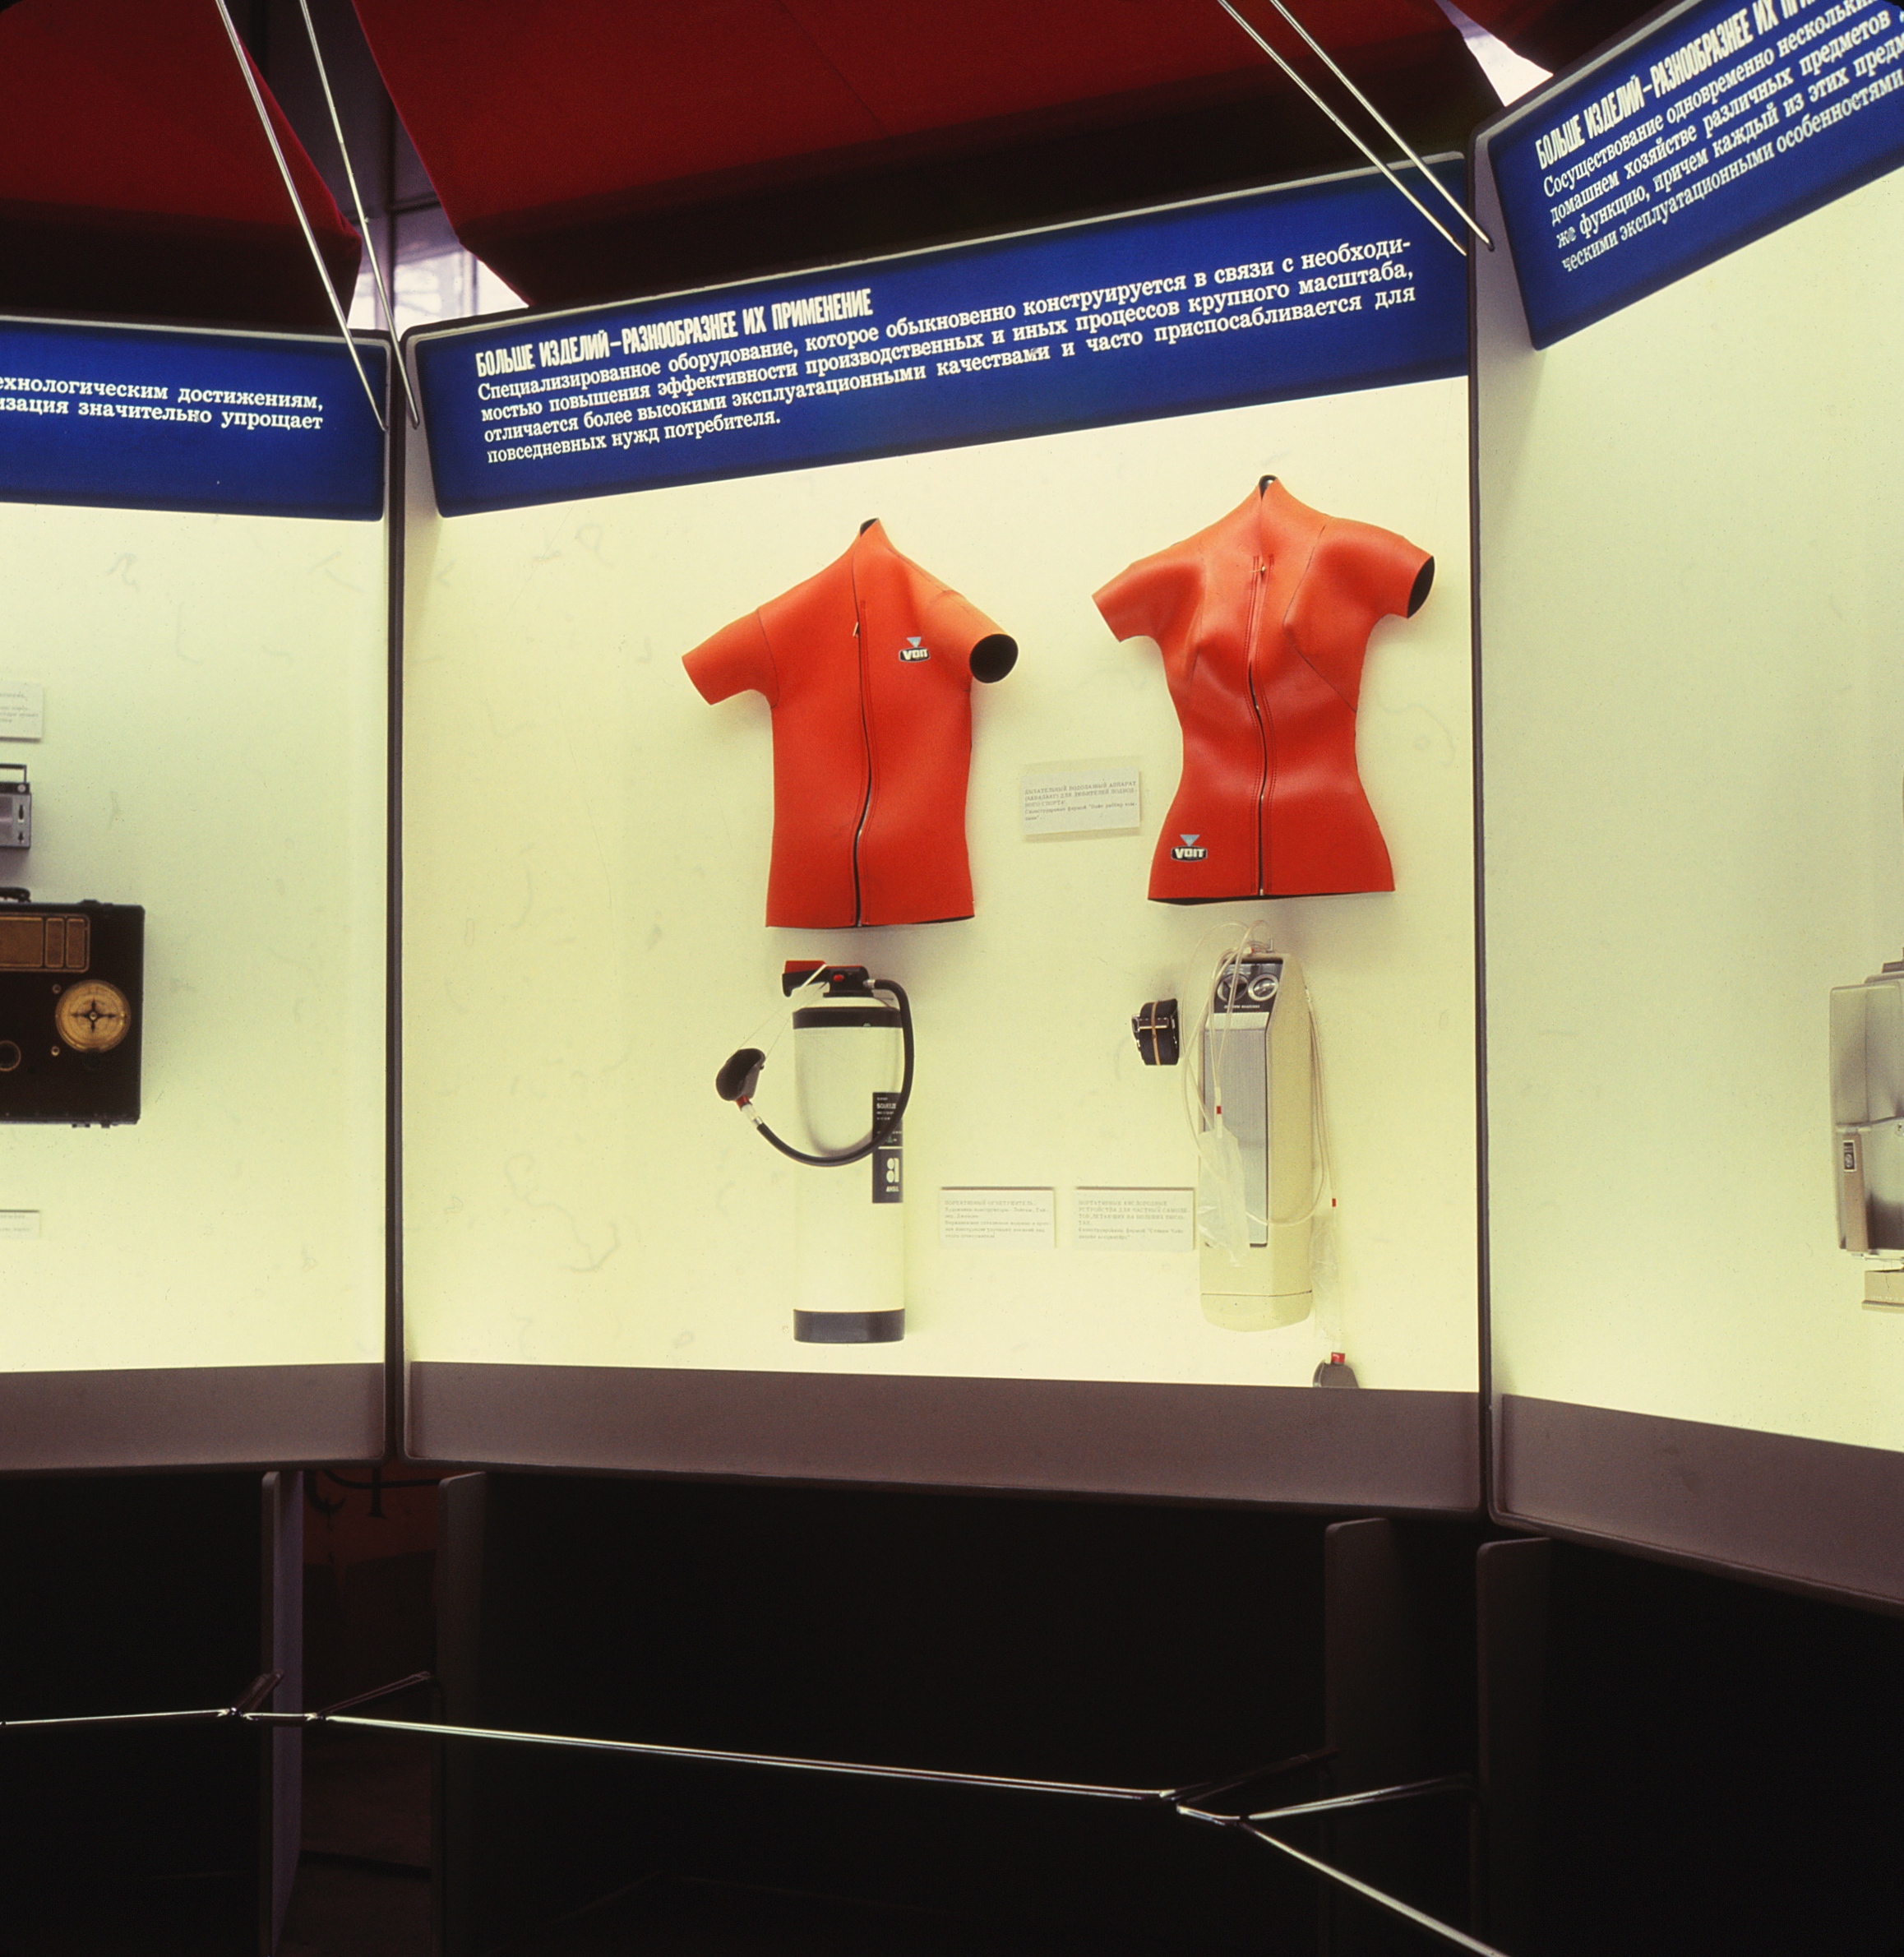 Display cases featuring scuba gear and wetsuits.